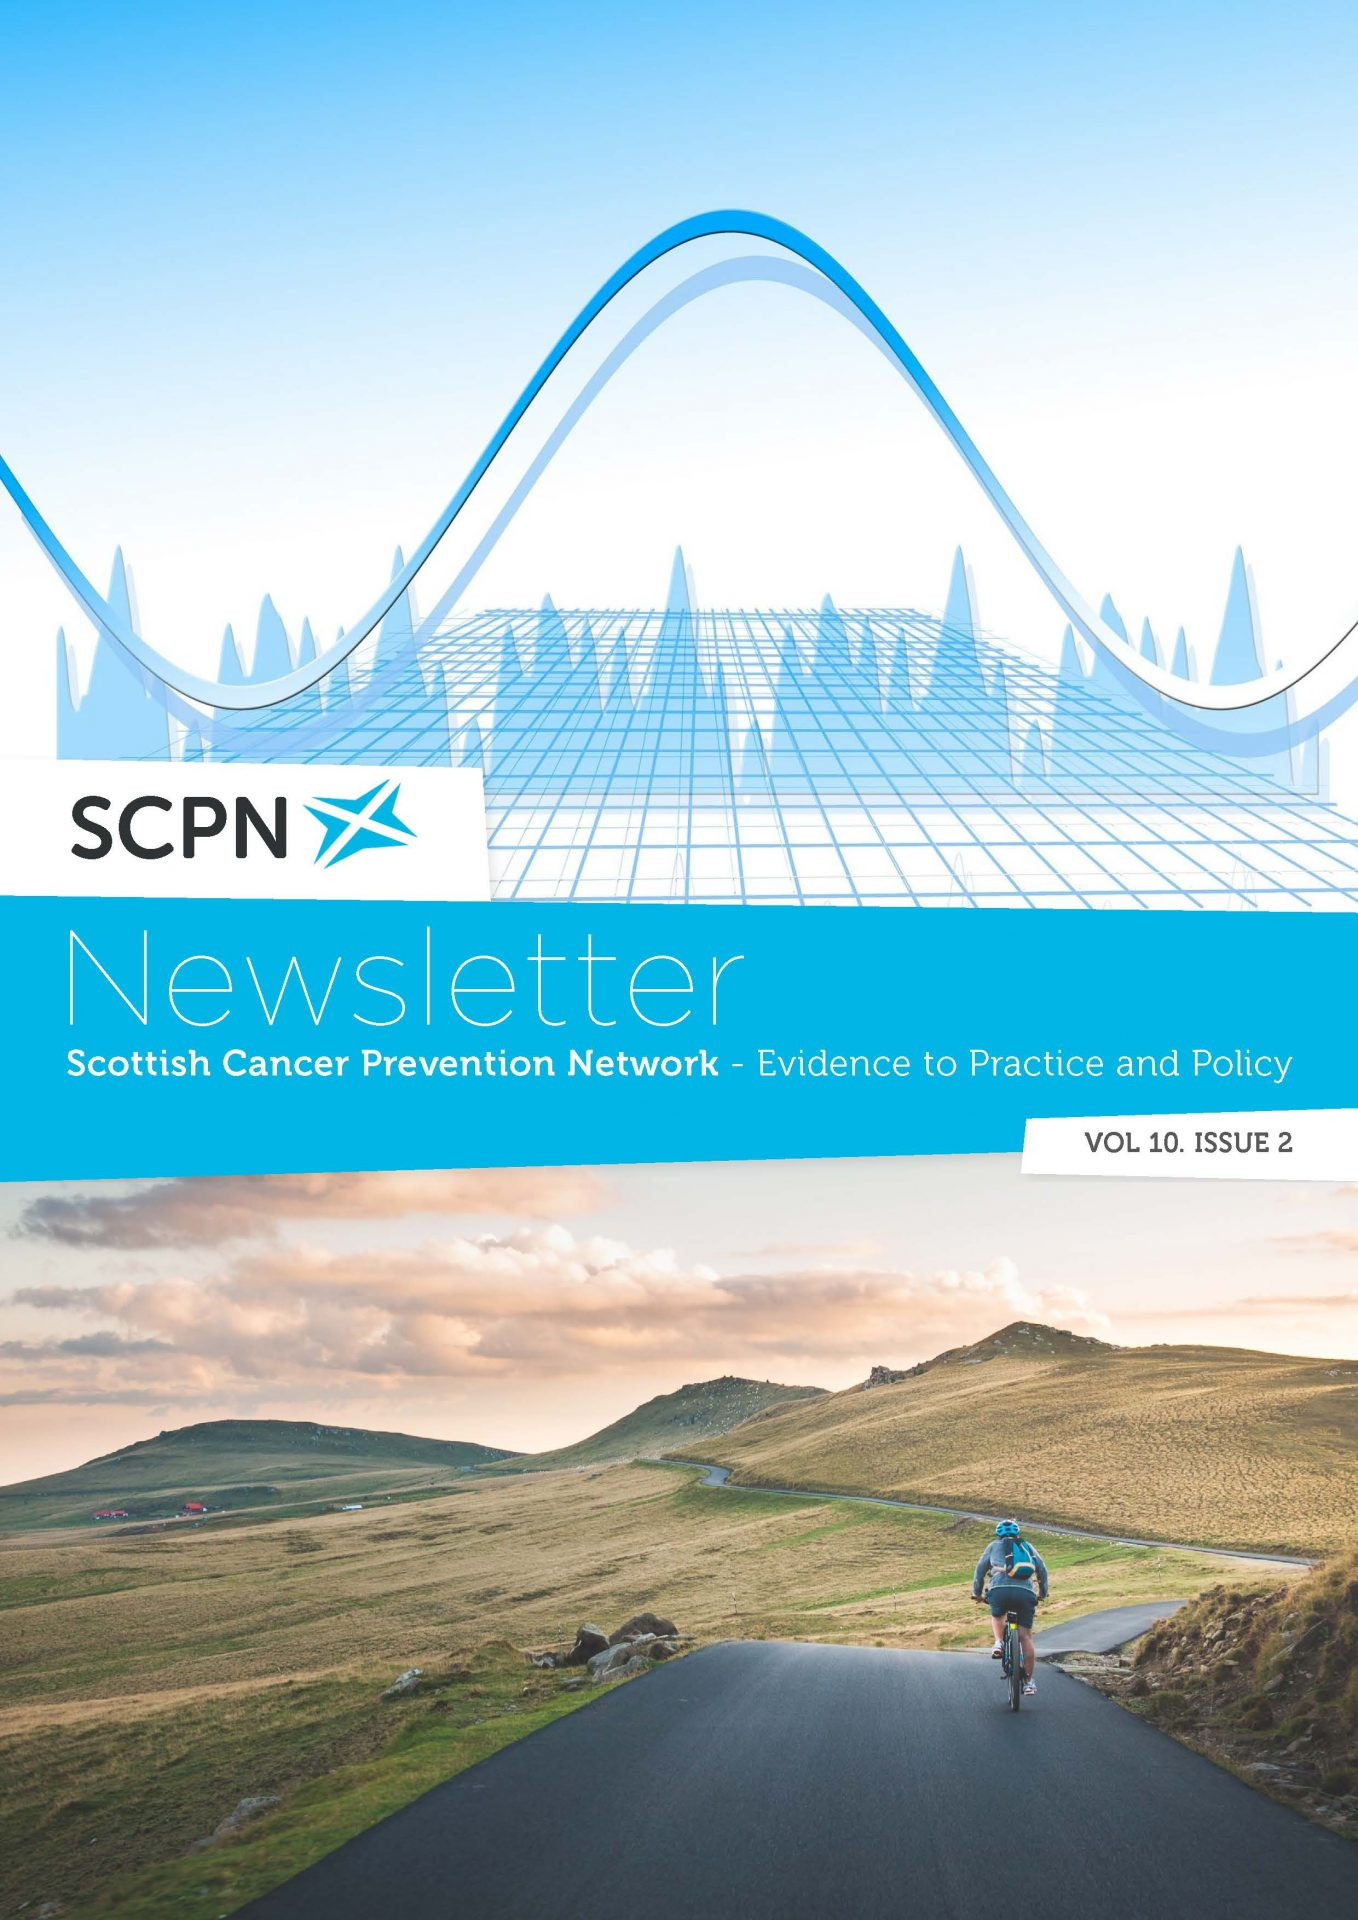 The SCPN Newsletter: Volume 10, Issue 2